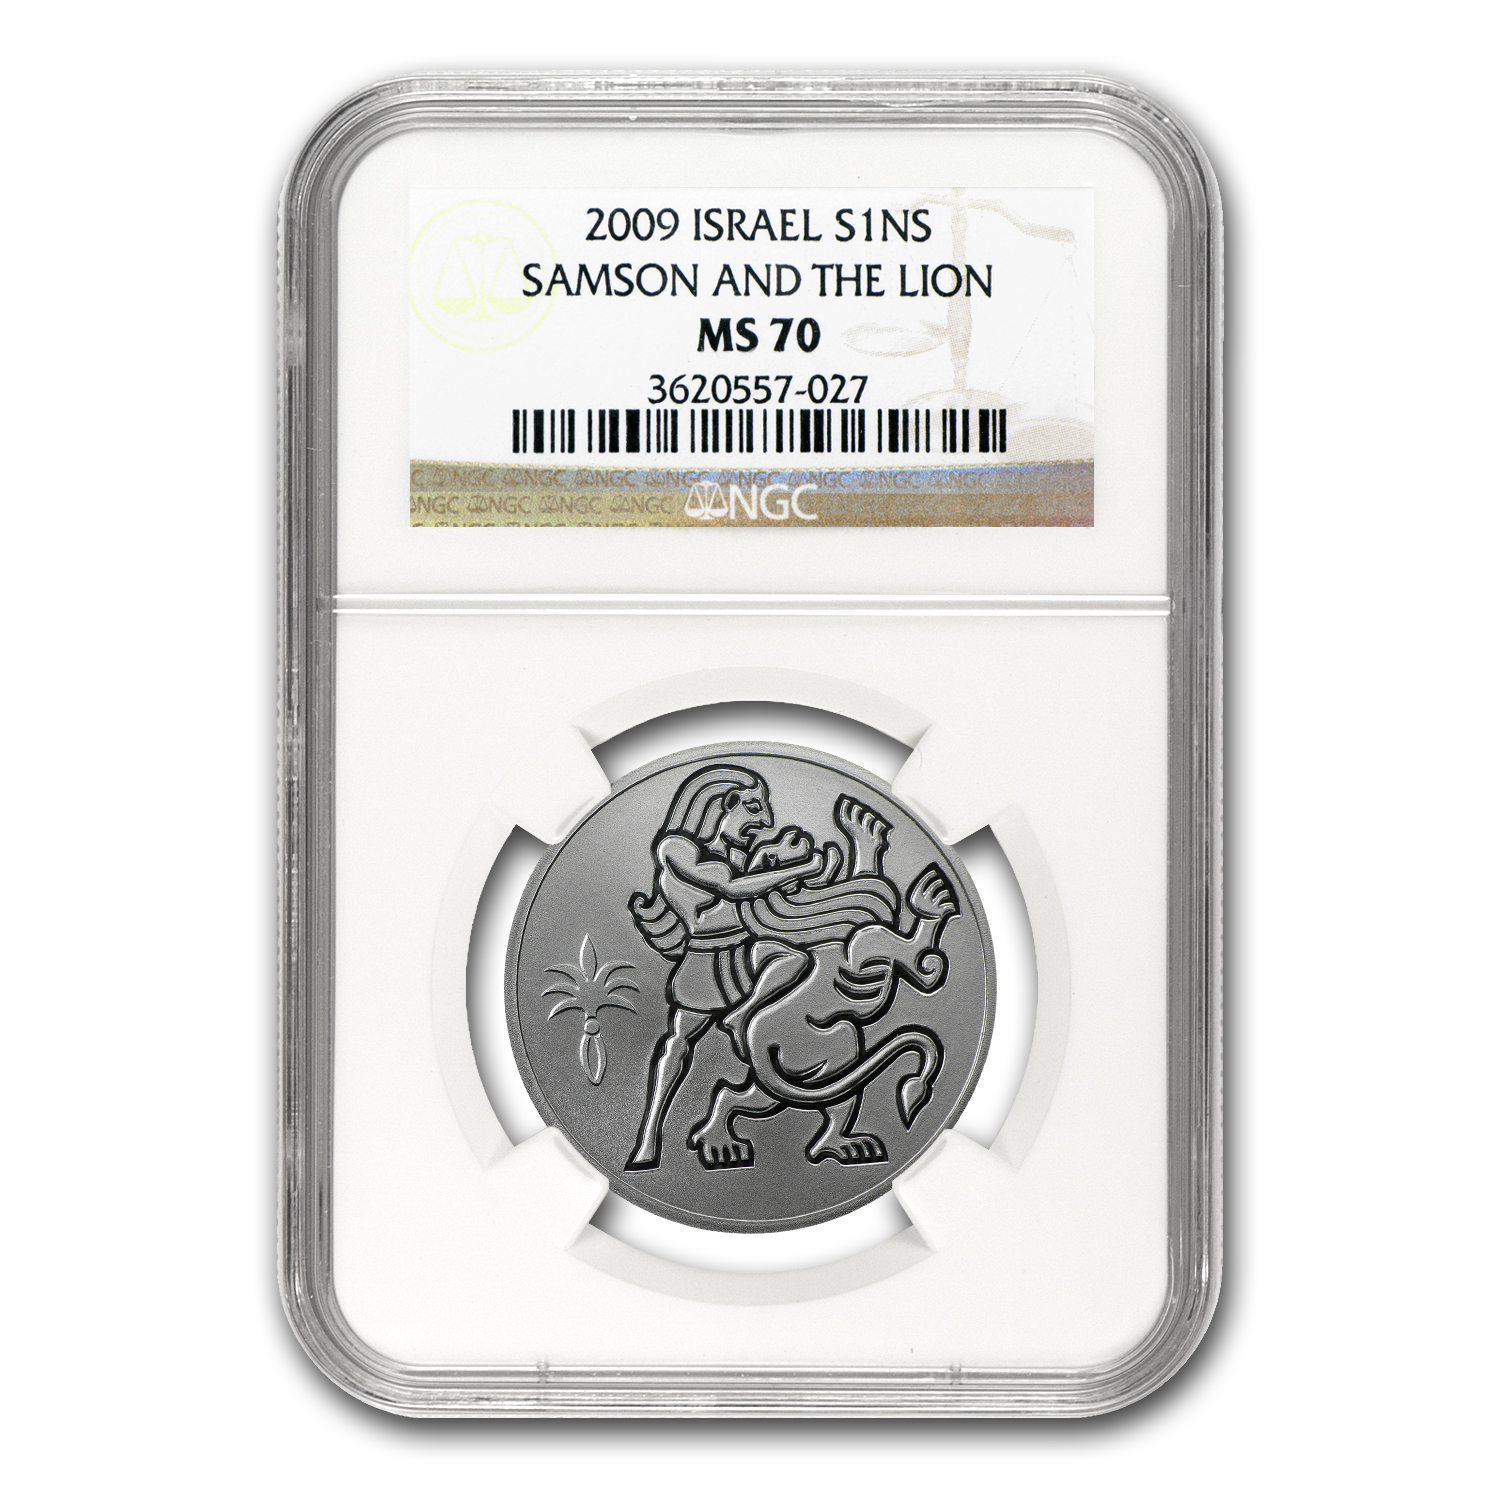 2009 Israel Samson and the Lion Silver 1 NIS MS-70 NGC